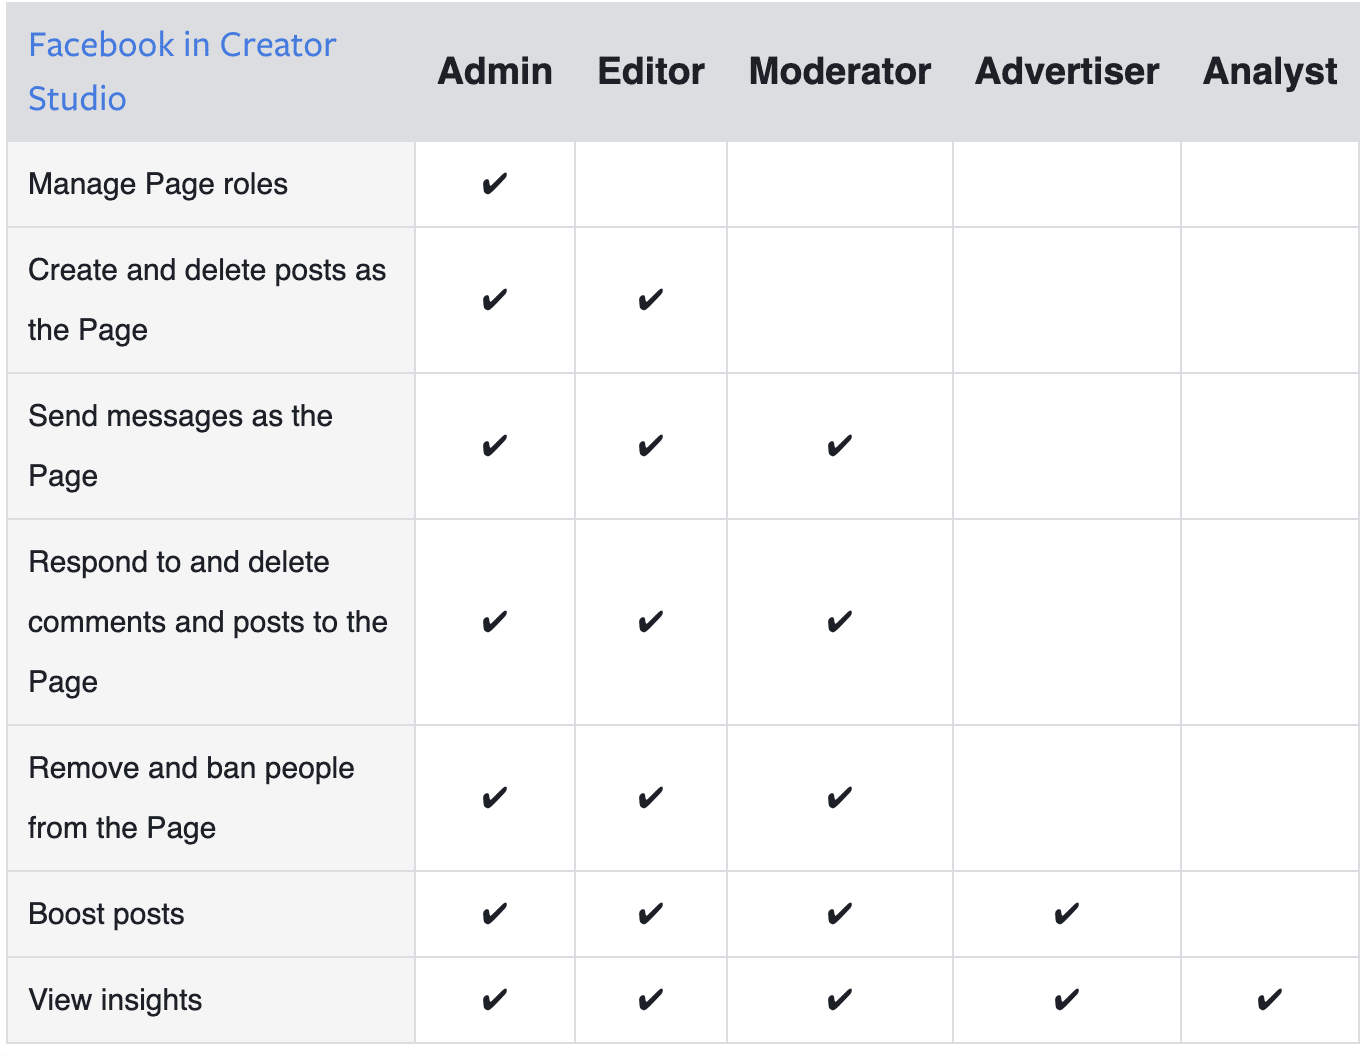 page roles in Facebook Creator Studio